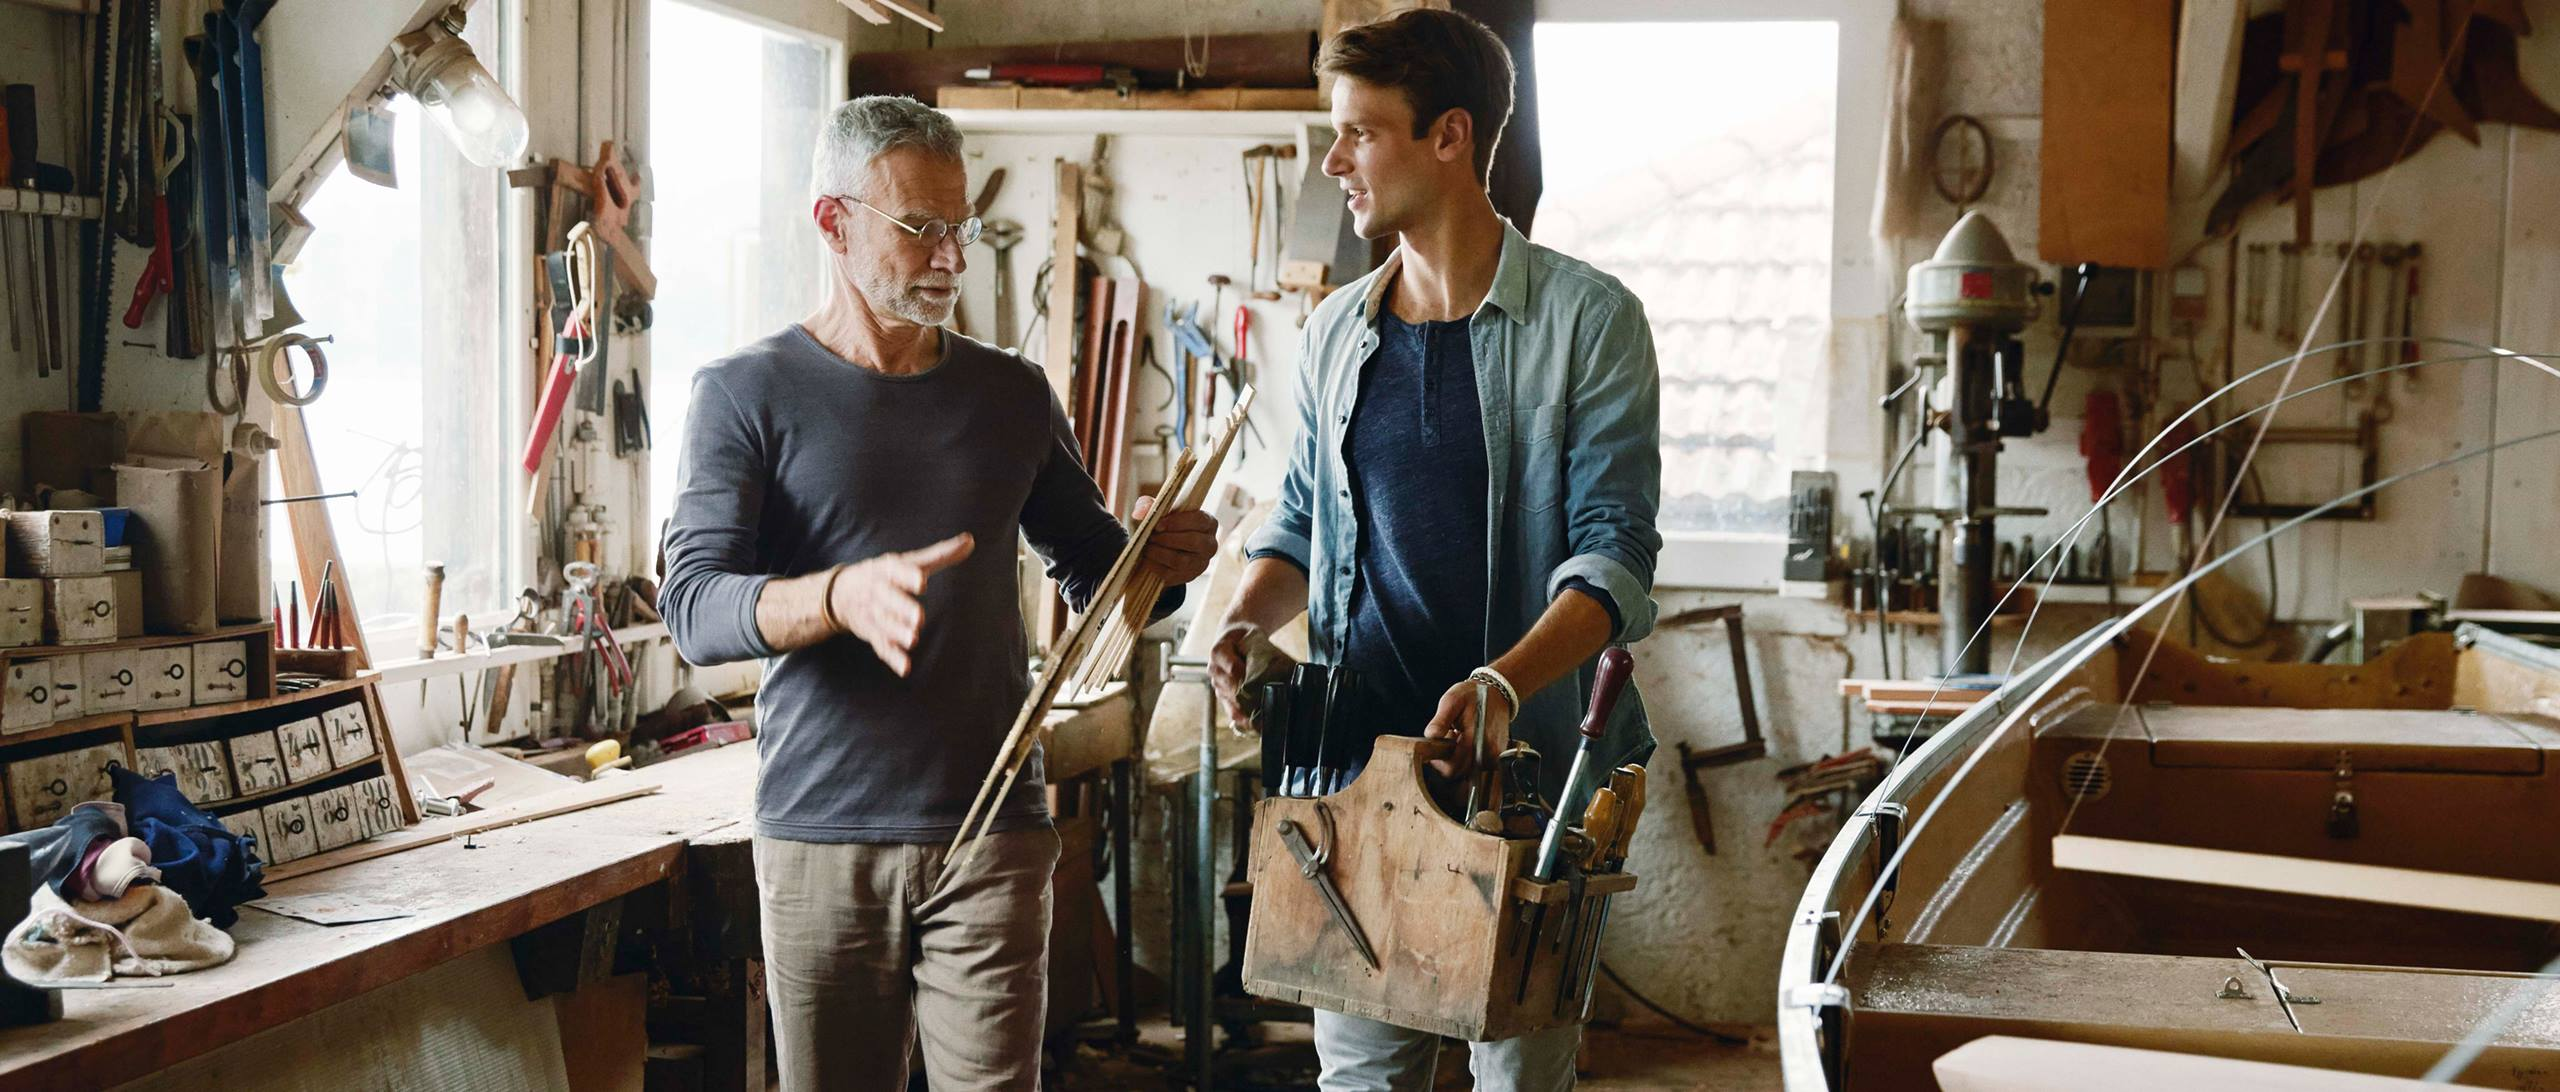 2 men in workshop